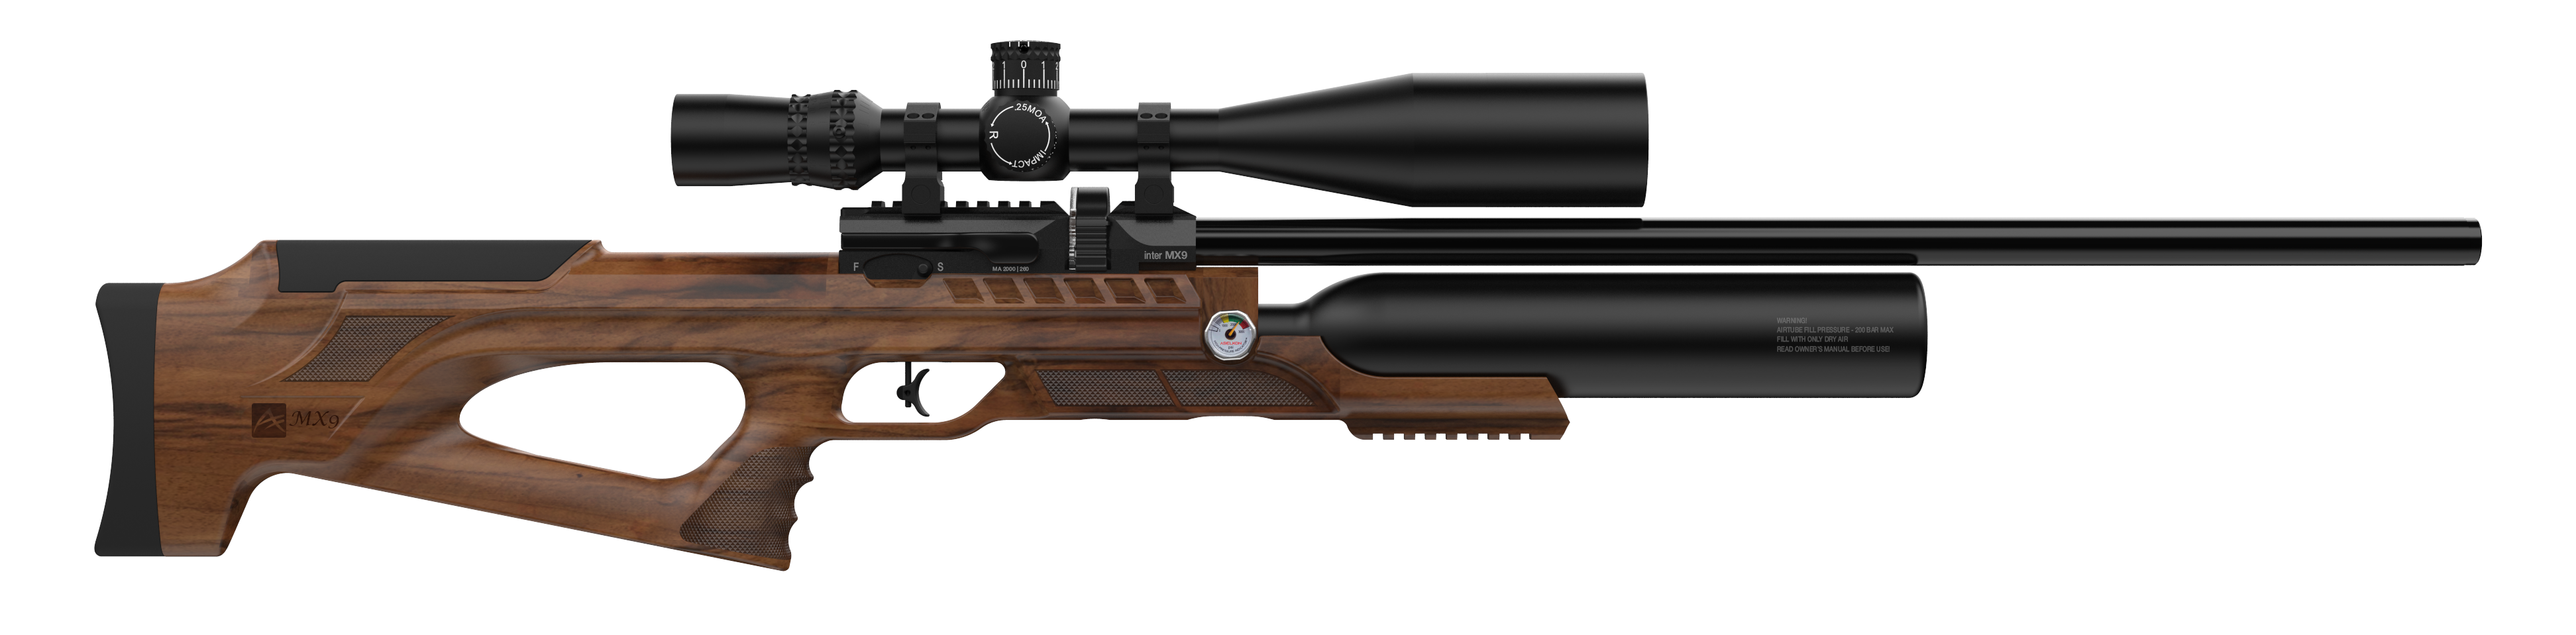 PCP MX9 SNIPER WOOD